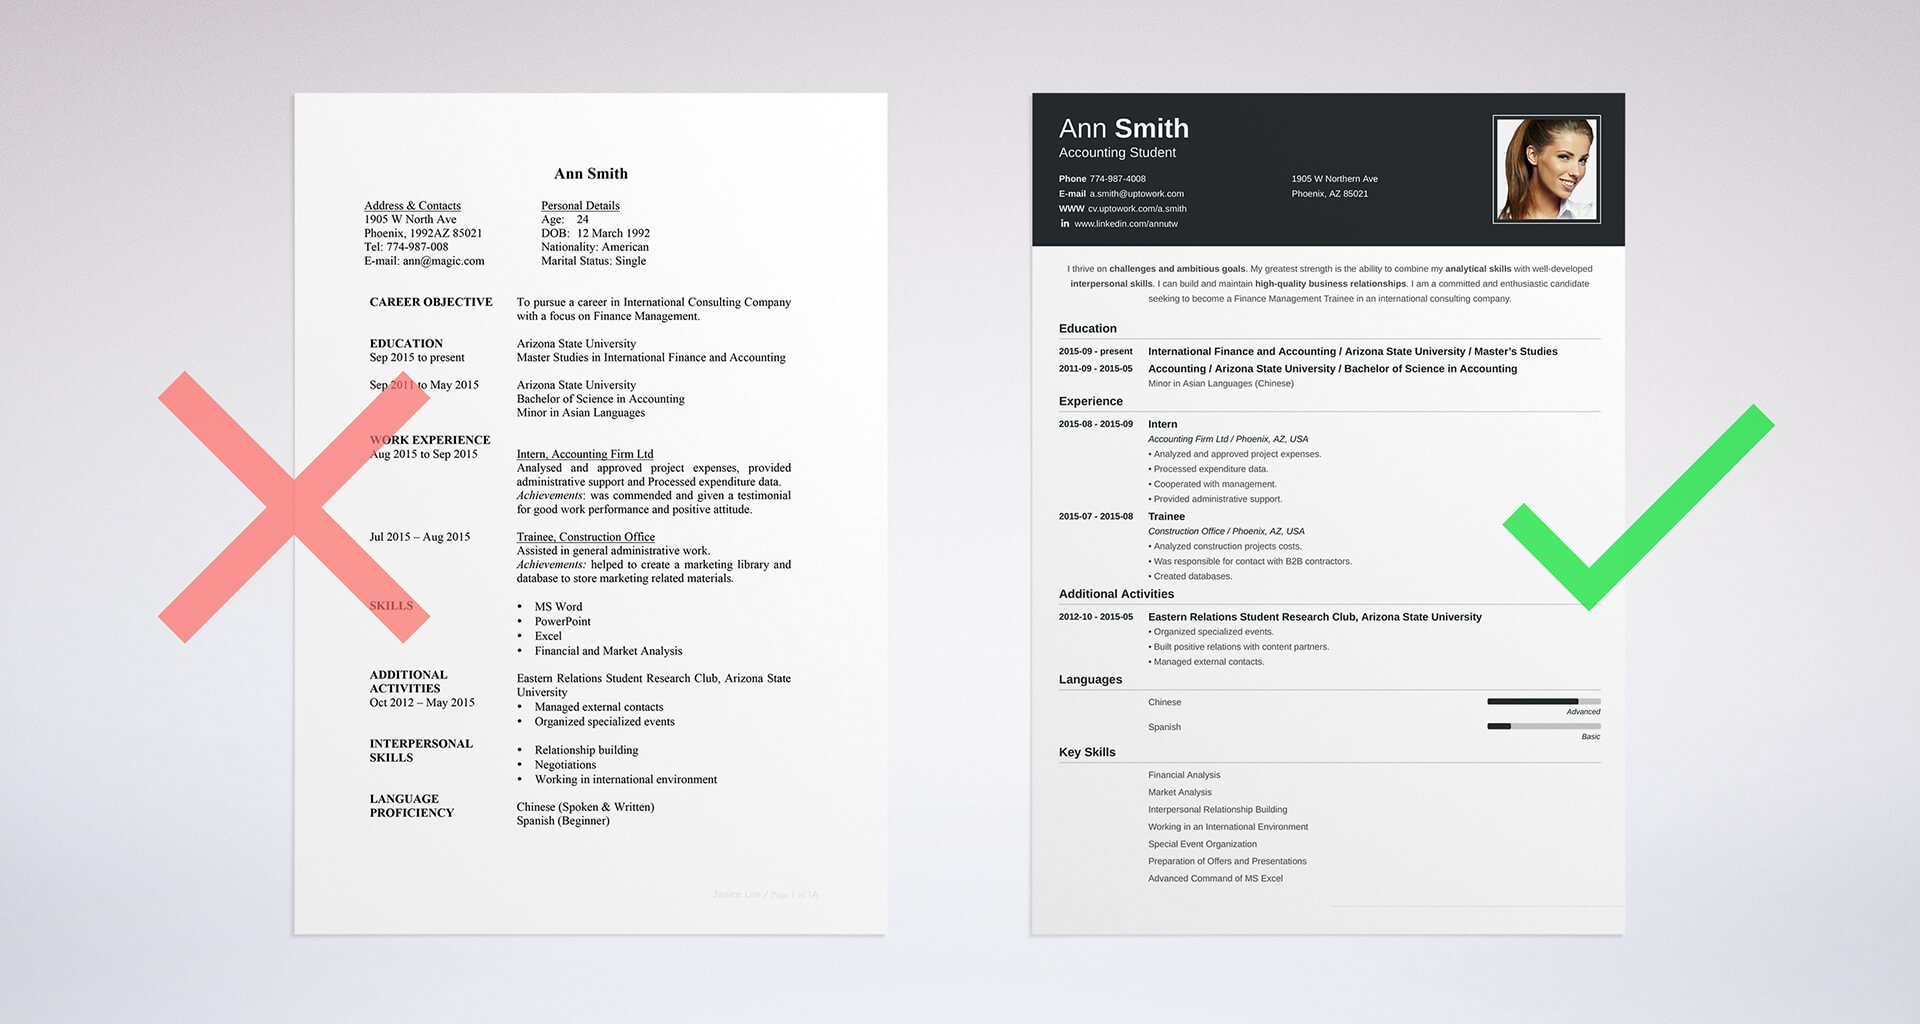 Elegant +20 Resume Objective Examples   Use Them On Your Resume (Tips) Throughout Objective Examples Resume